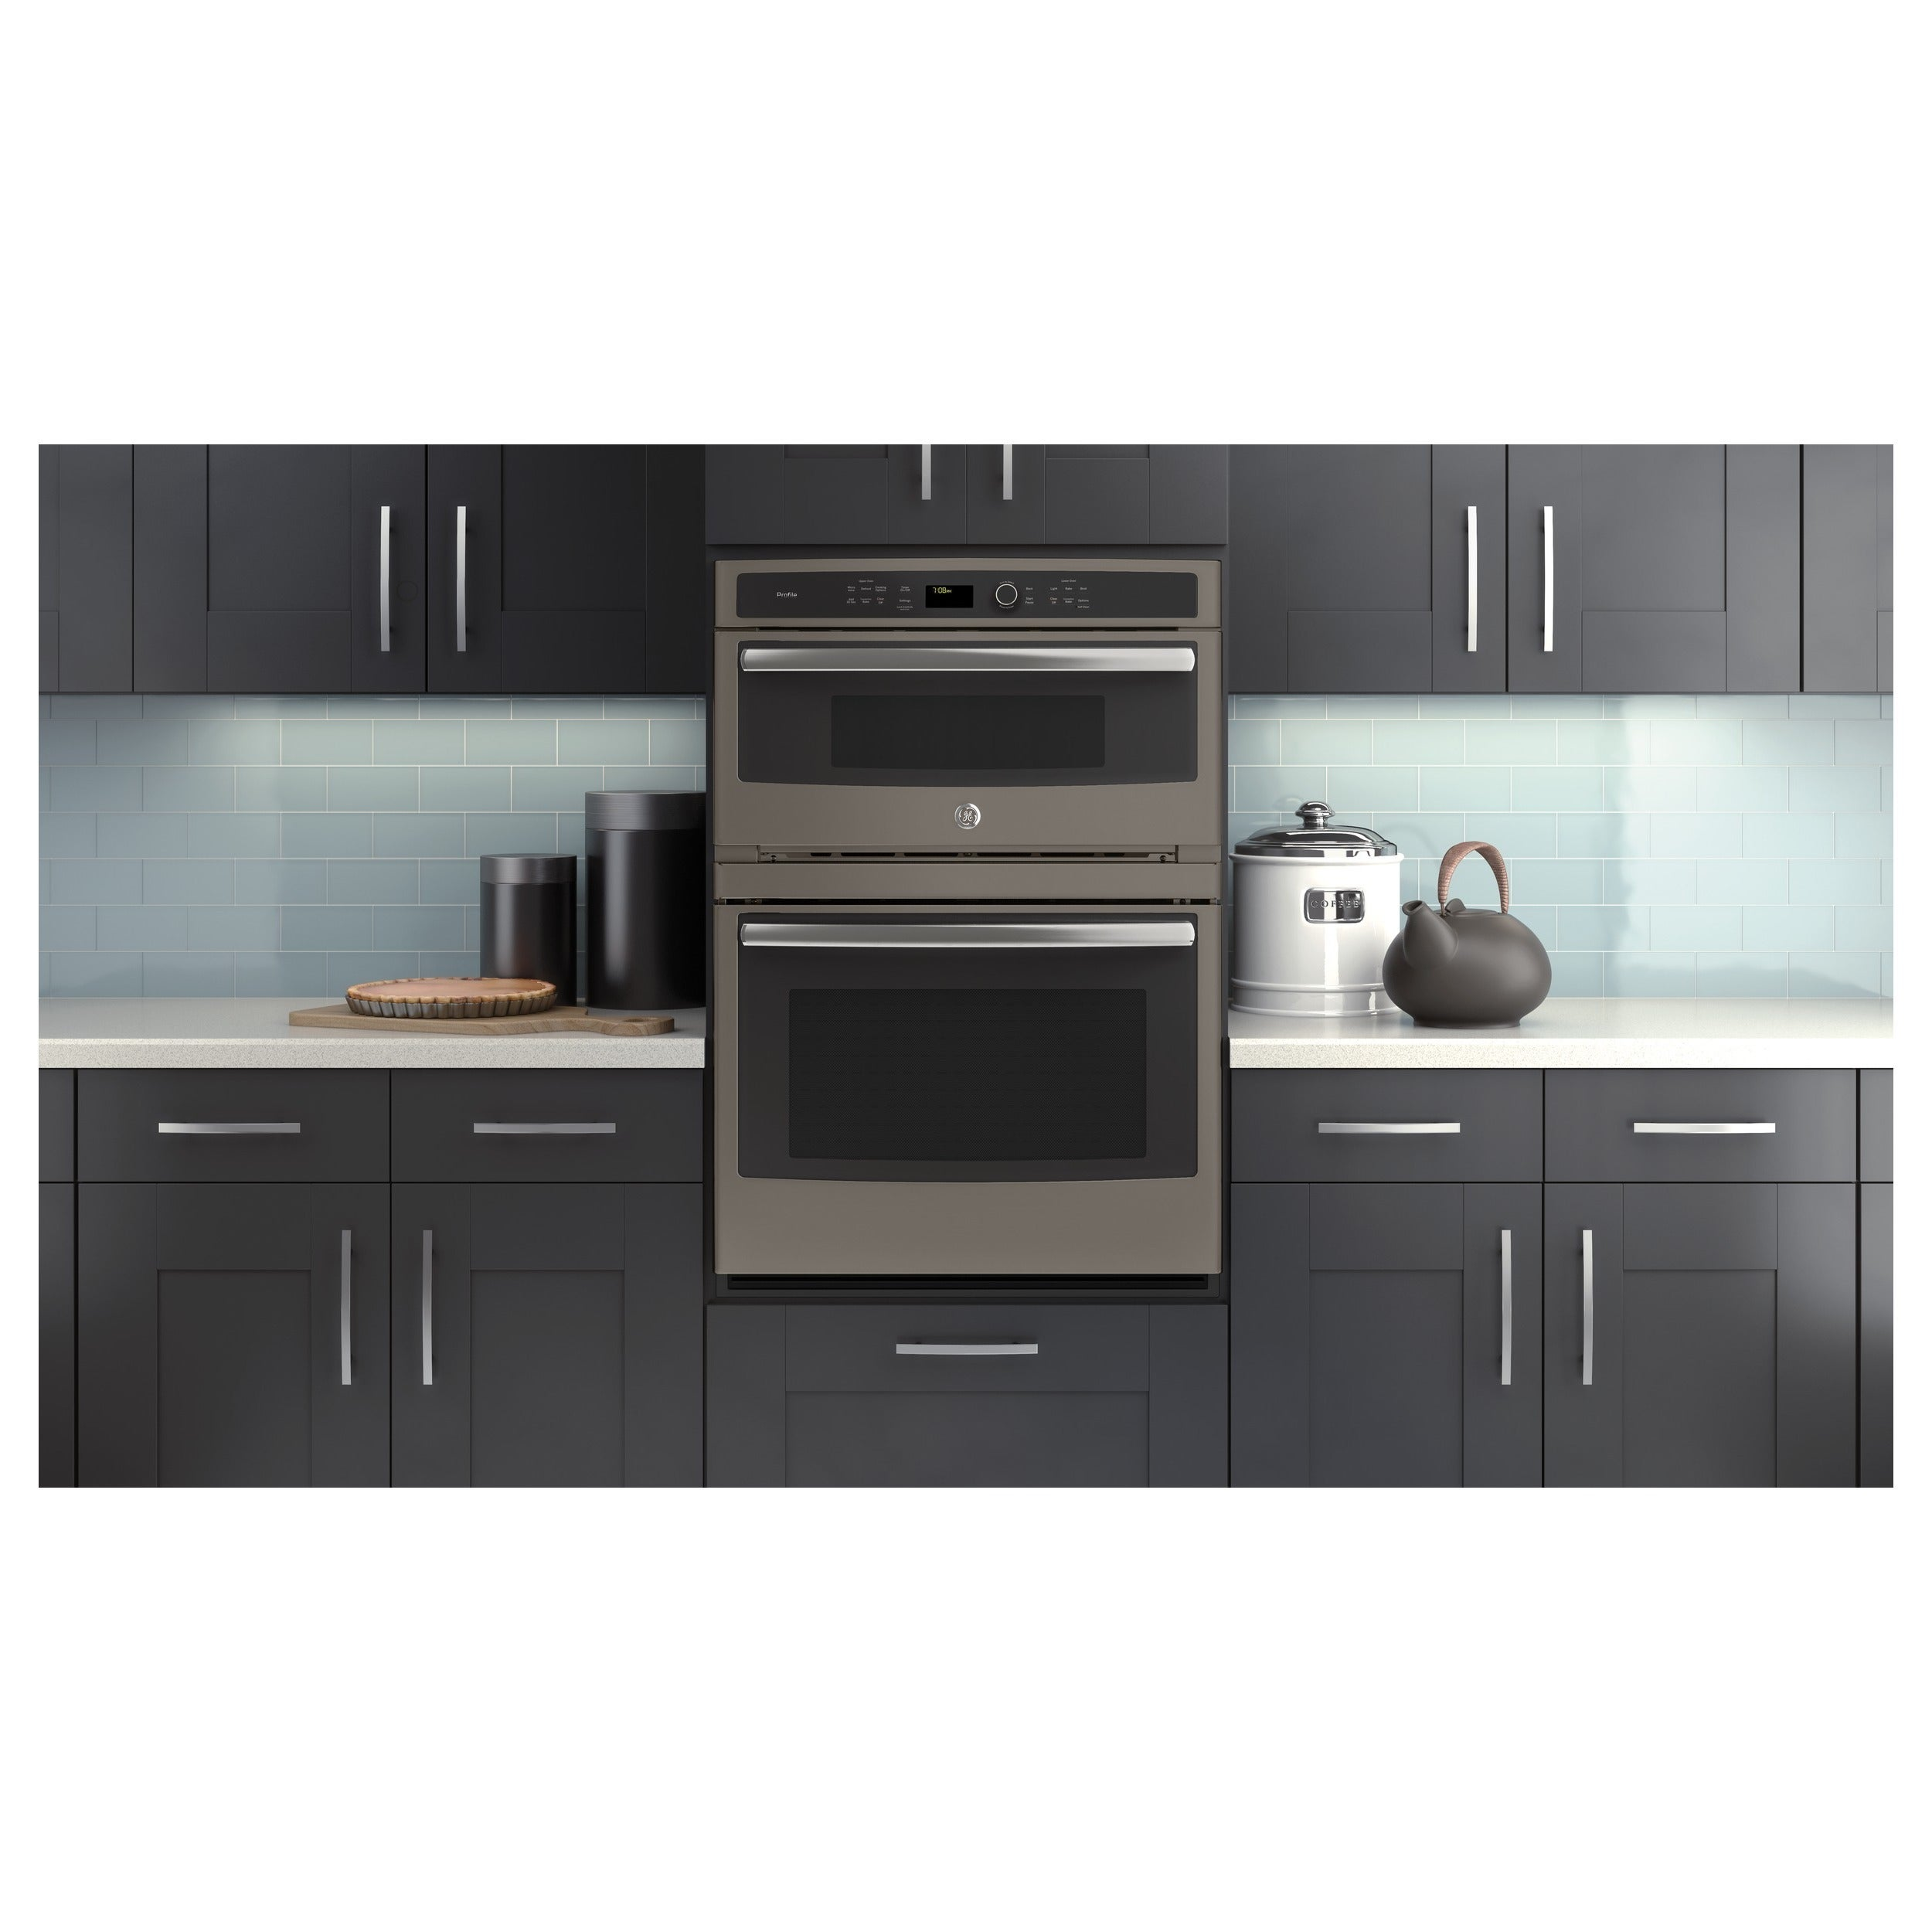 Built In Microwave Oven 30 Inch: GE Profile Series 30-inch Built-in Combo Convection